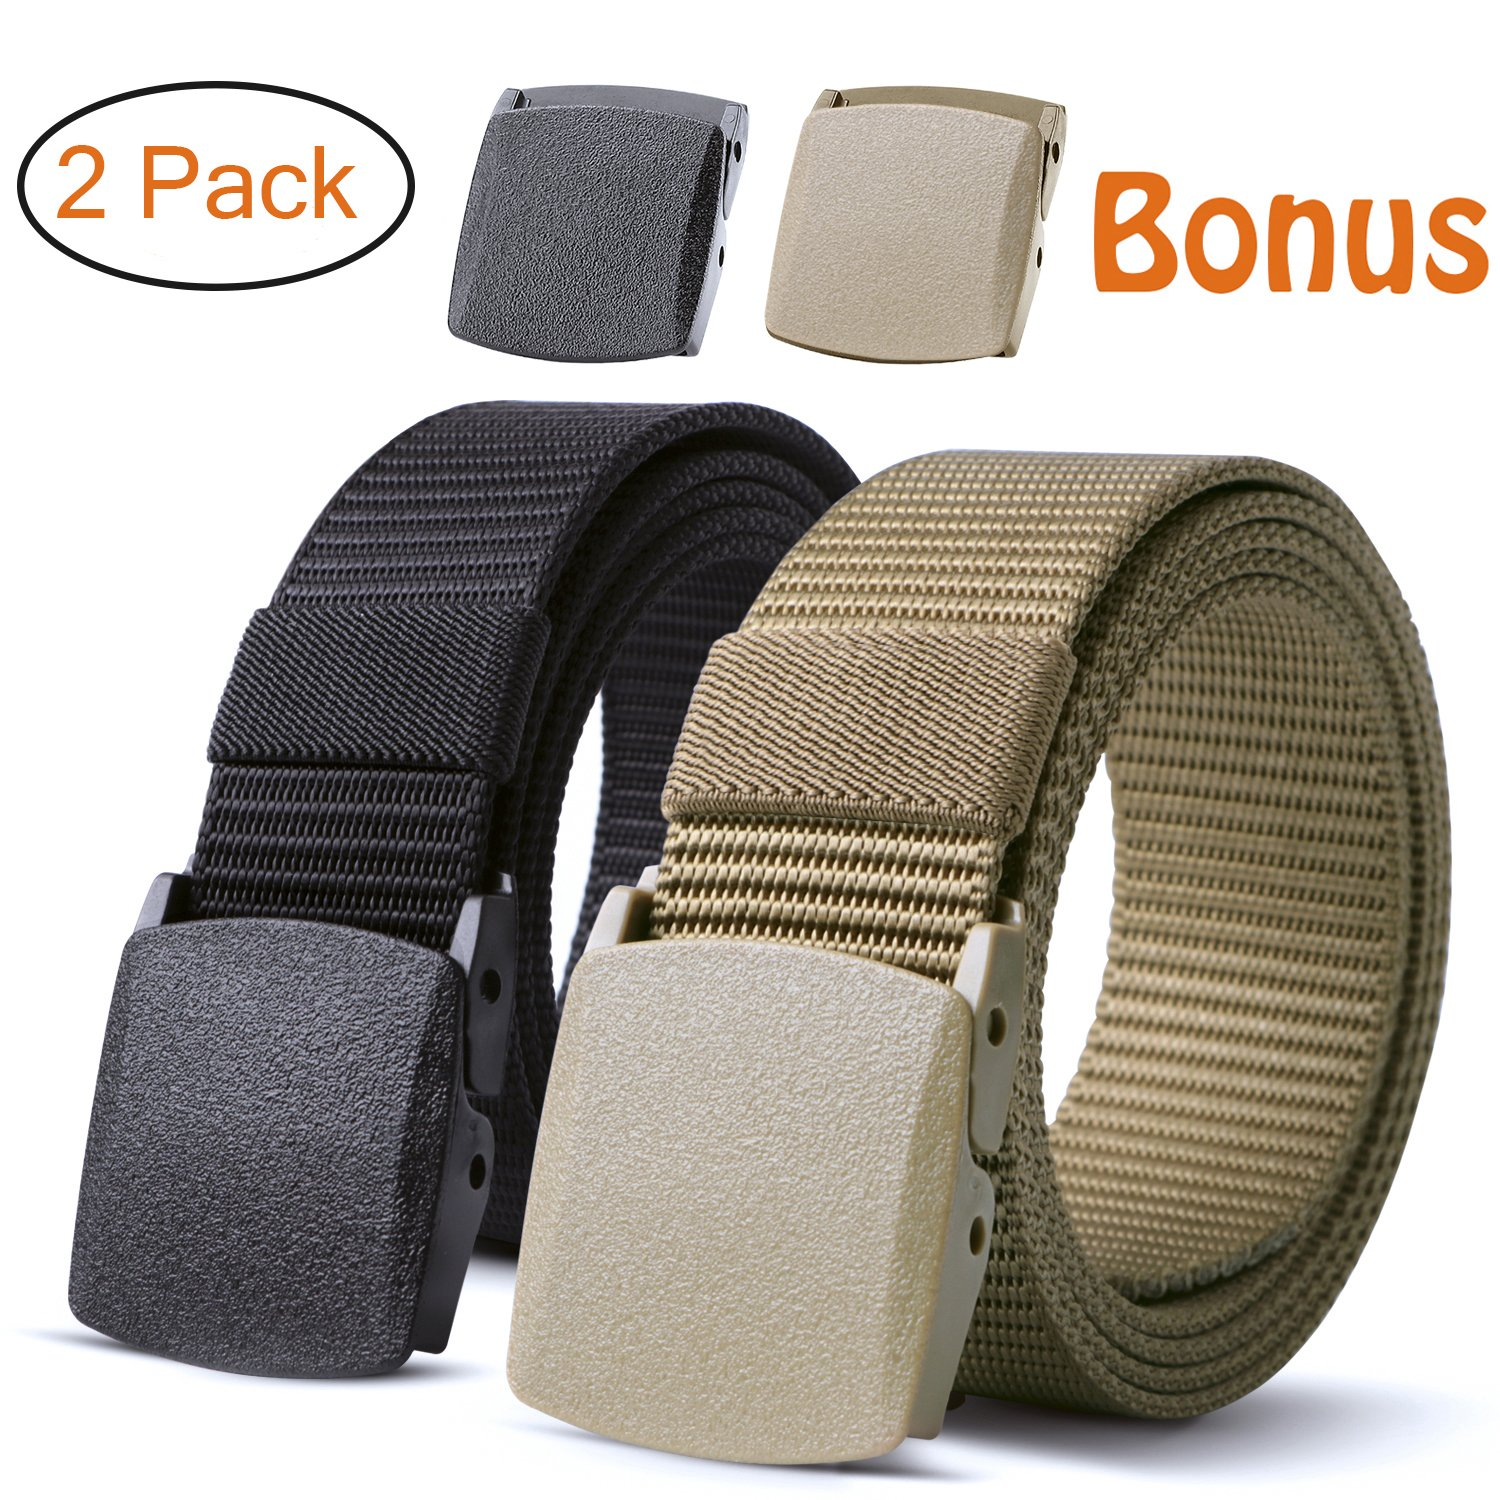 Nylon Military Tactical Belt 2 Pack Webbing Canvas Outdoor Web Belt With Plastic Buckle by JASGOOD (Image #1)